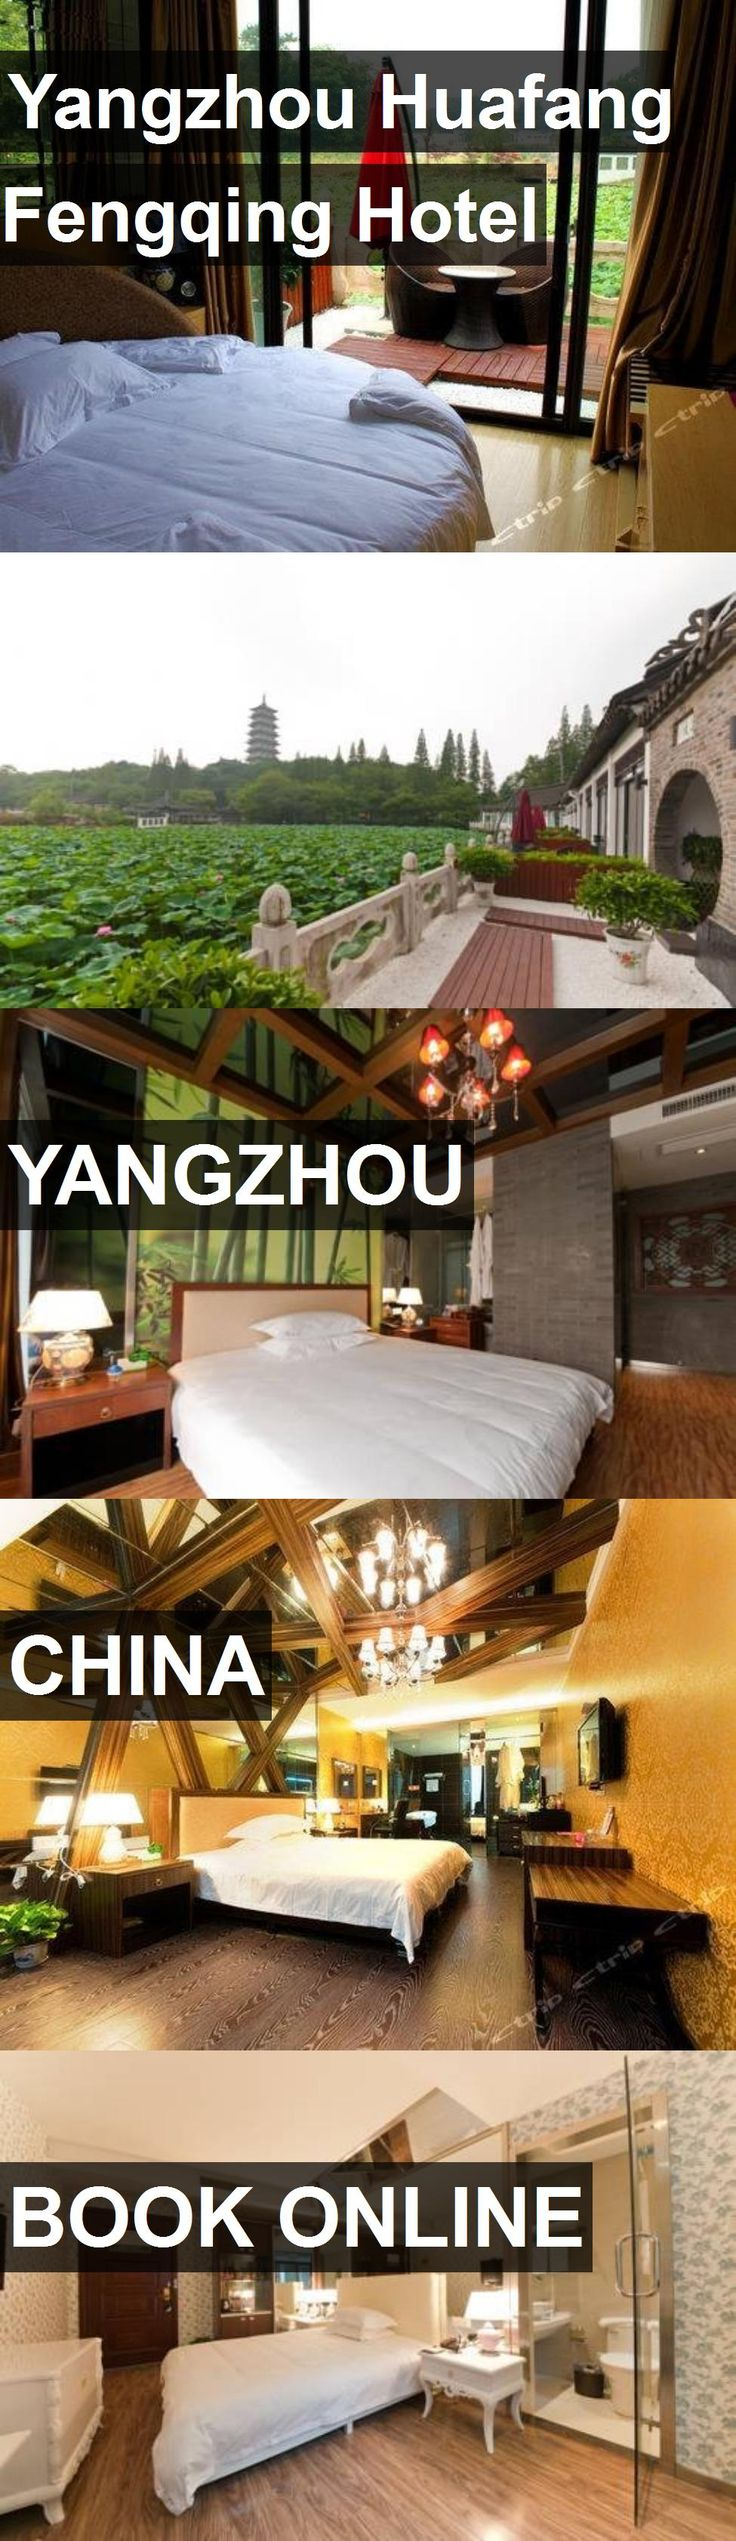 Yangzhou Huafang Fengqing Hotel in Yangzhou, China. For more information, photos, reviews and best prices please follow the link. #China #Yangzhou #travel #vacation #hotel